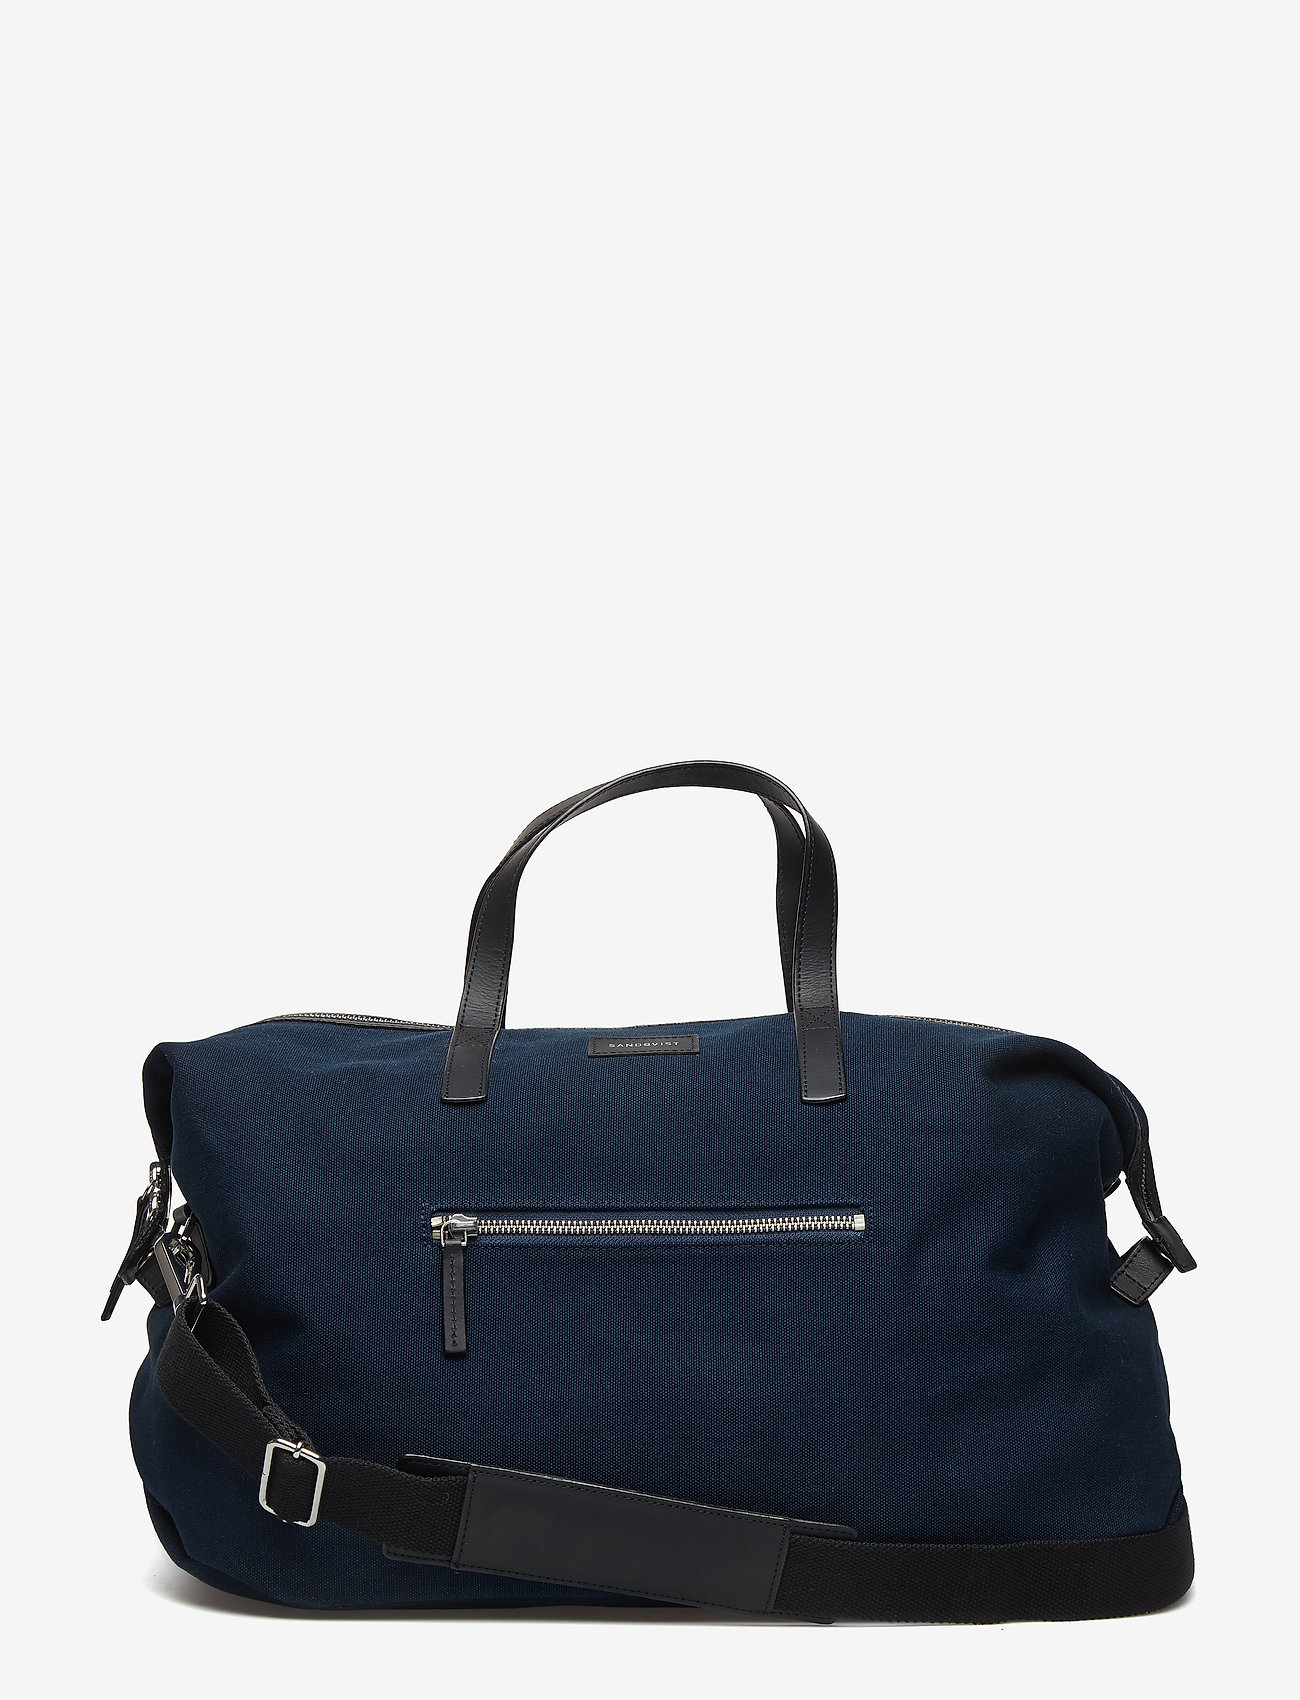 SANDQVIST - HOLLY - weekend and gym bags - blue with black leather